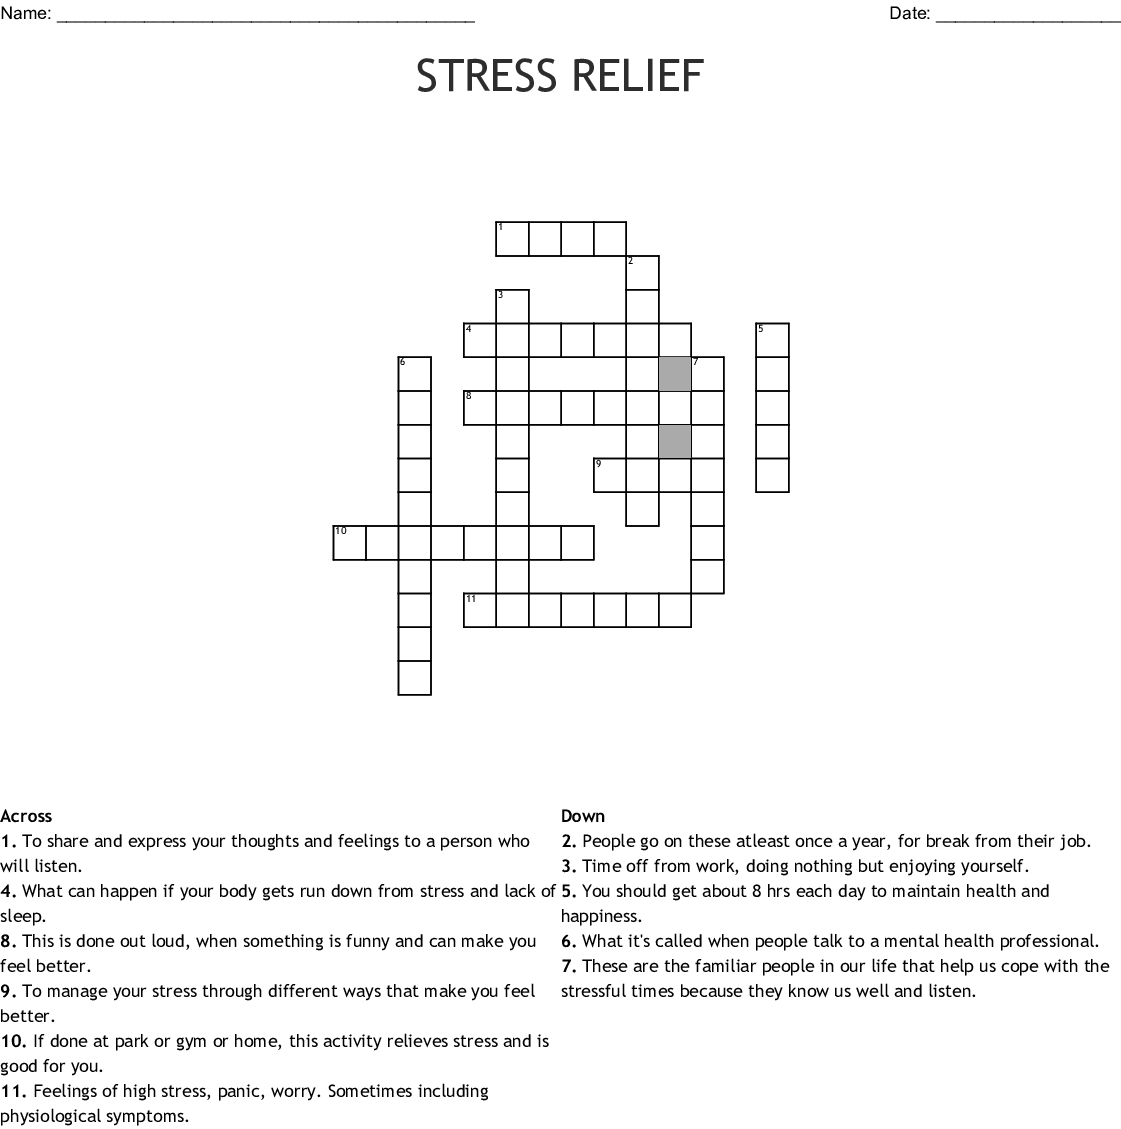 Stress Relief Crossword - Wordmint - Printable Stress Management Crossword Puzzle